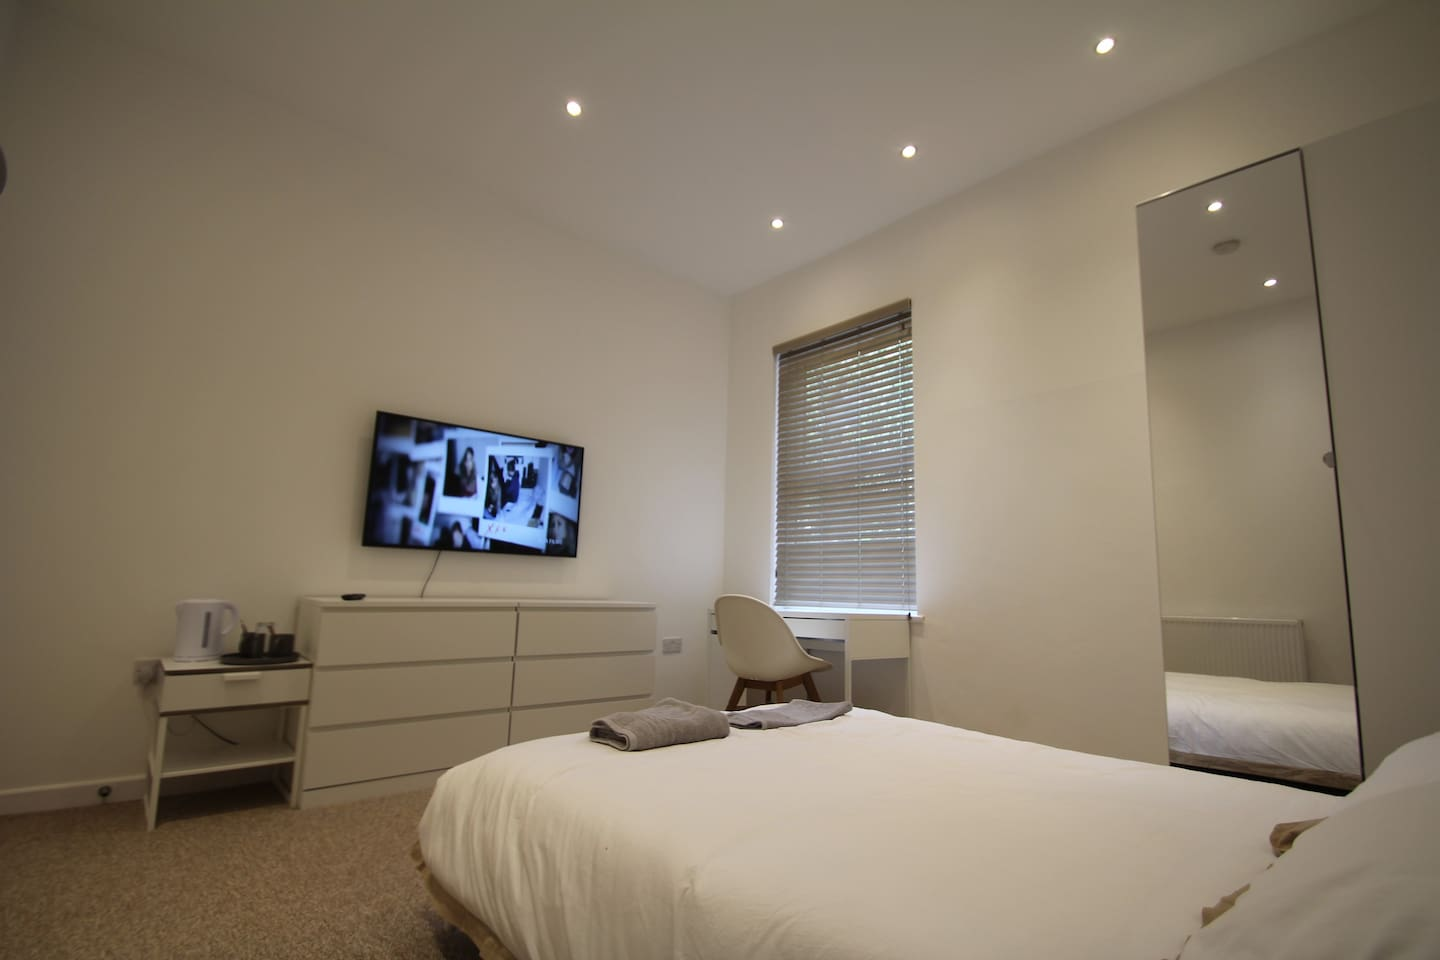 Hotel style room with amazing facilities